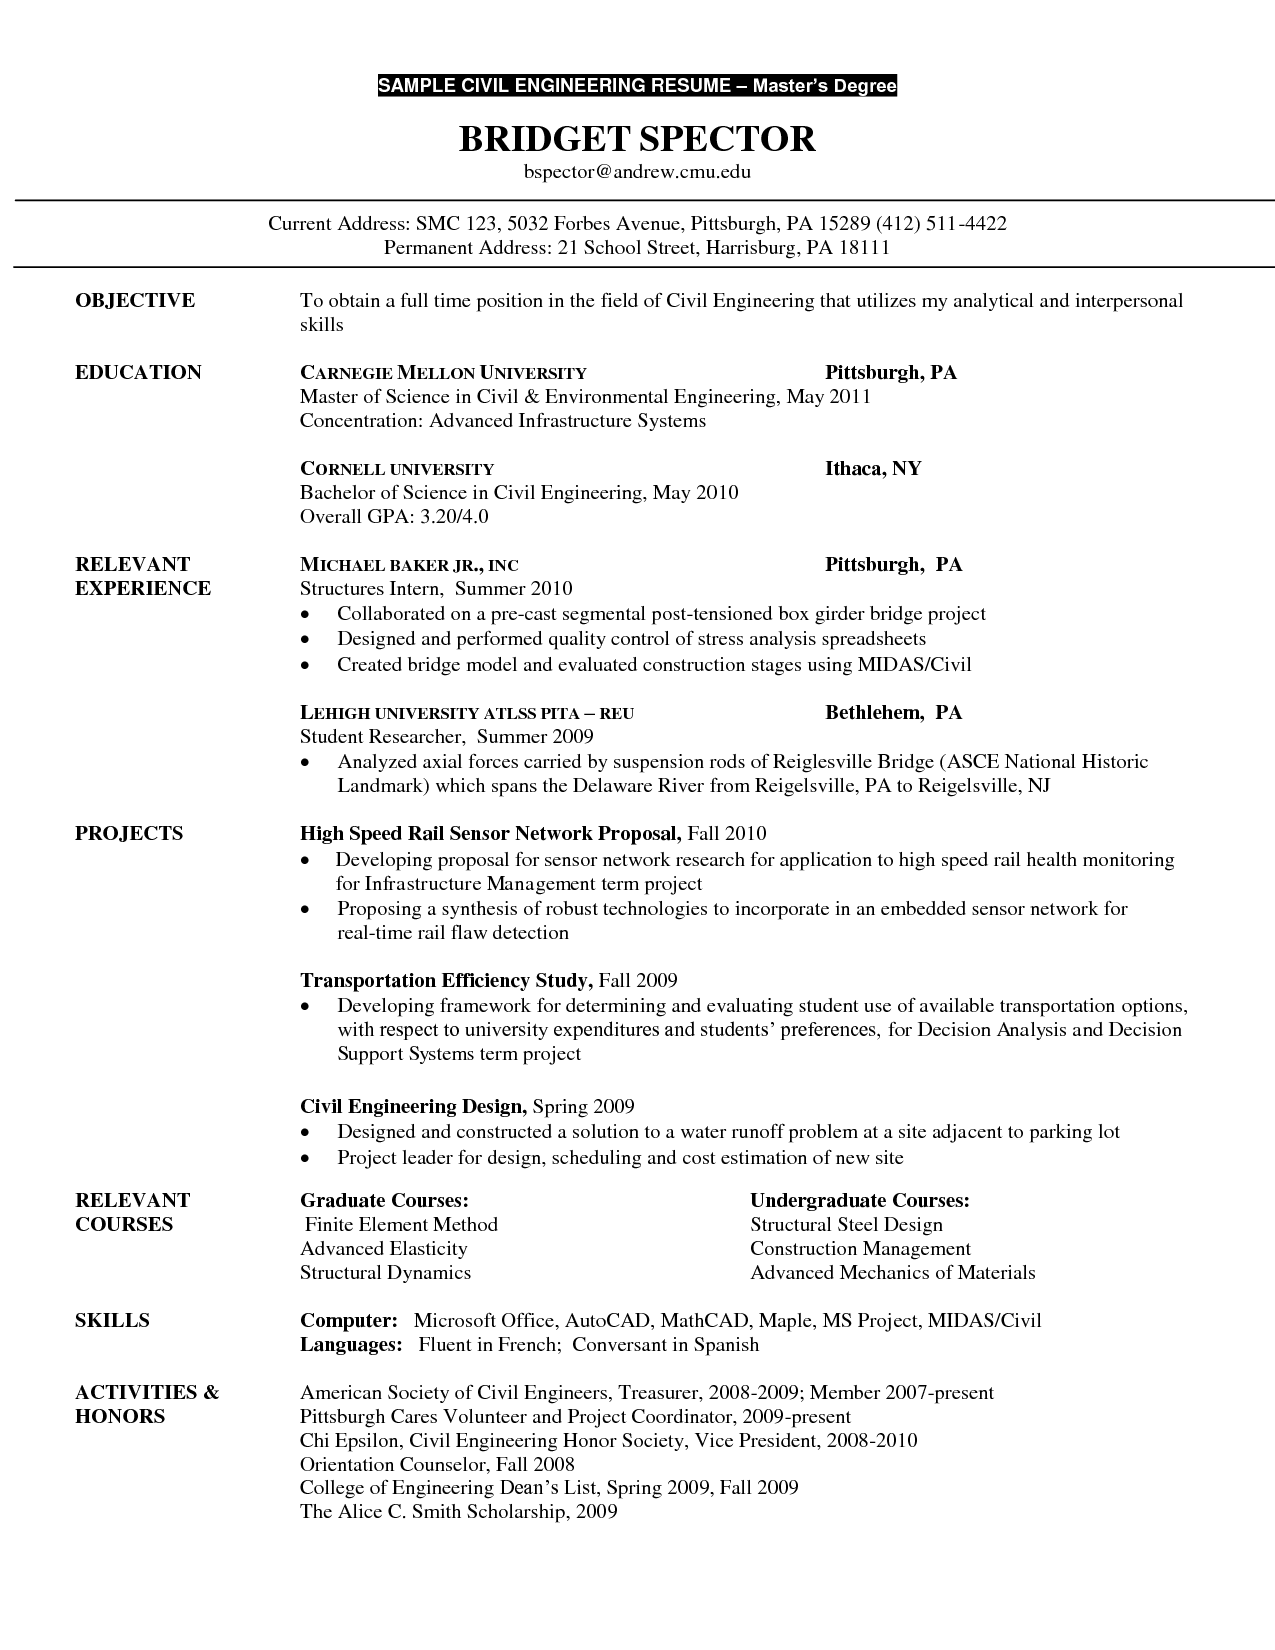 Personal Writing For Hire Gb Opinion Of Experts Resume For Graduate School Engineering Resume Resume Examples